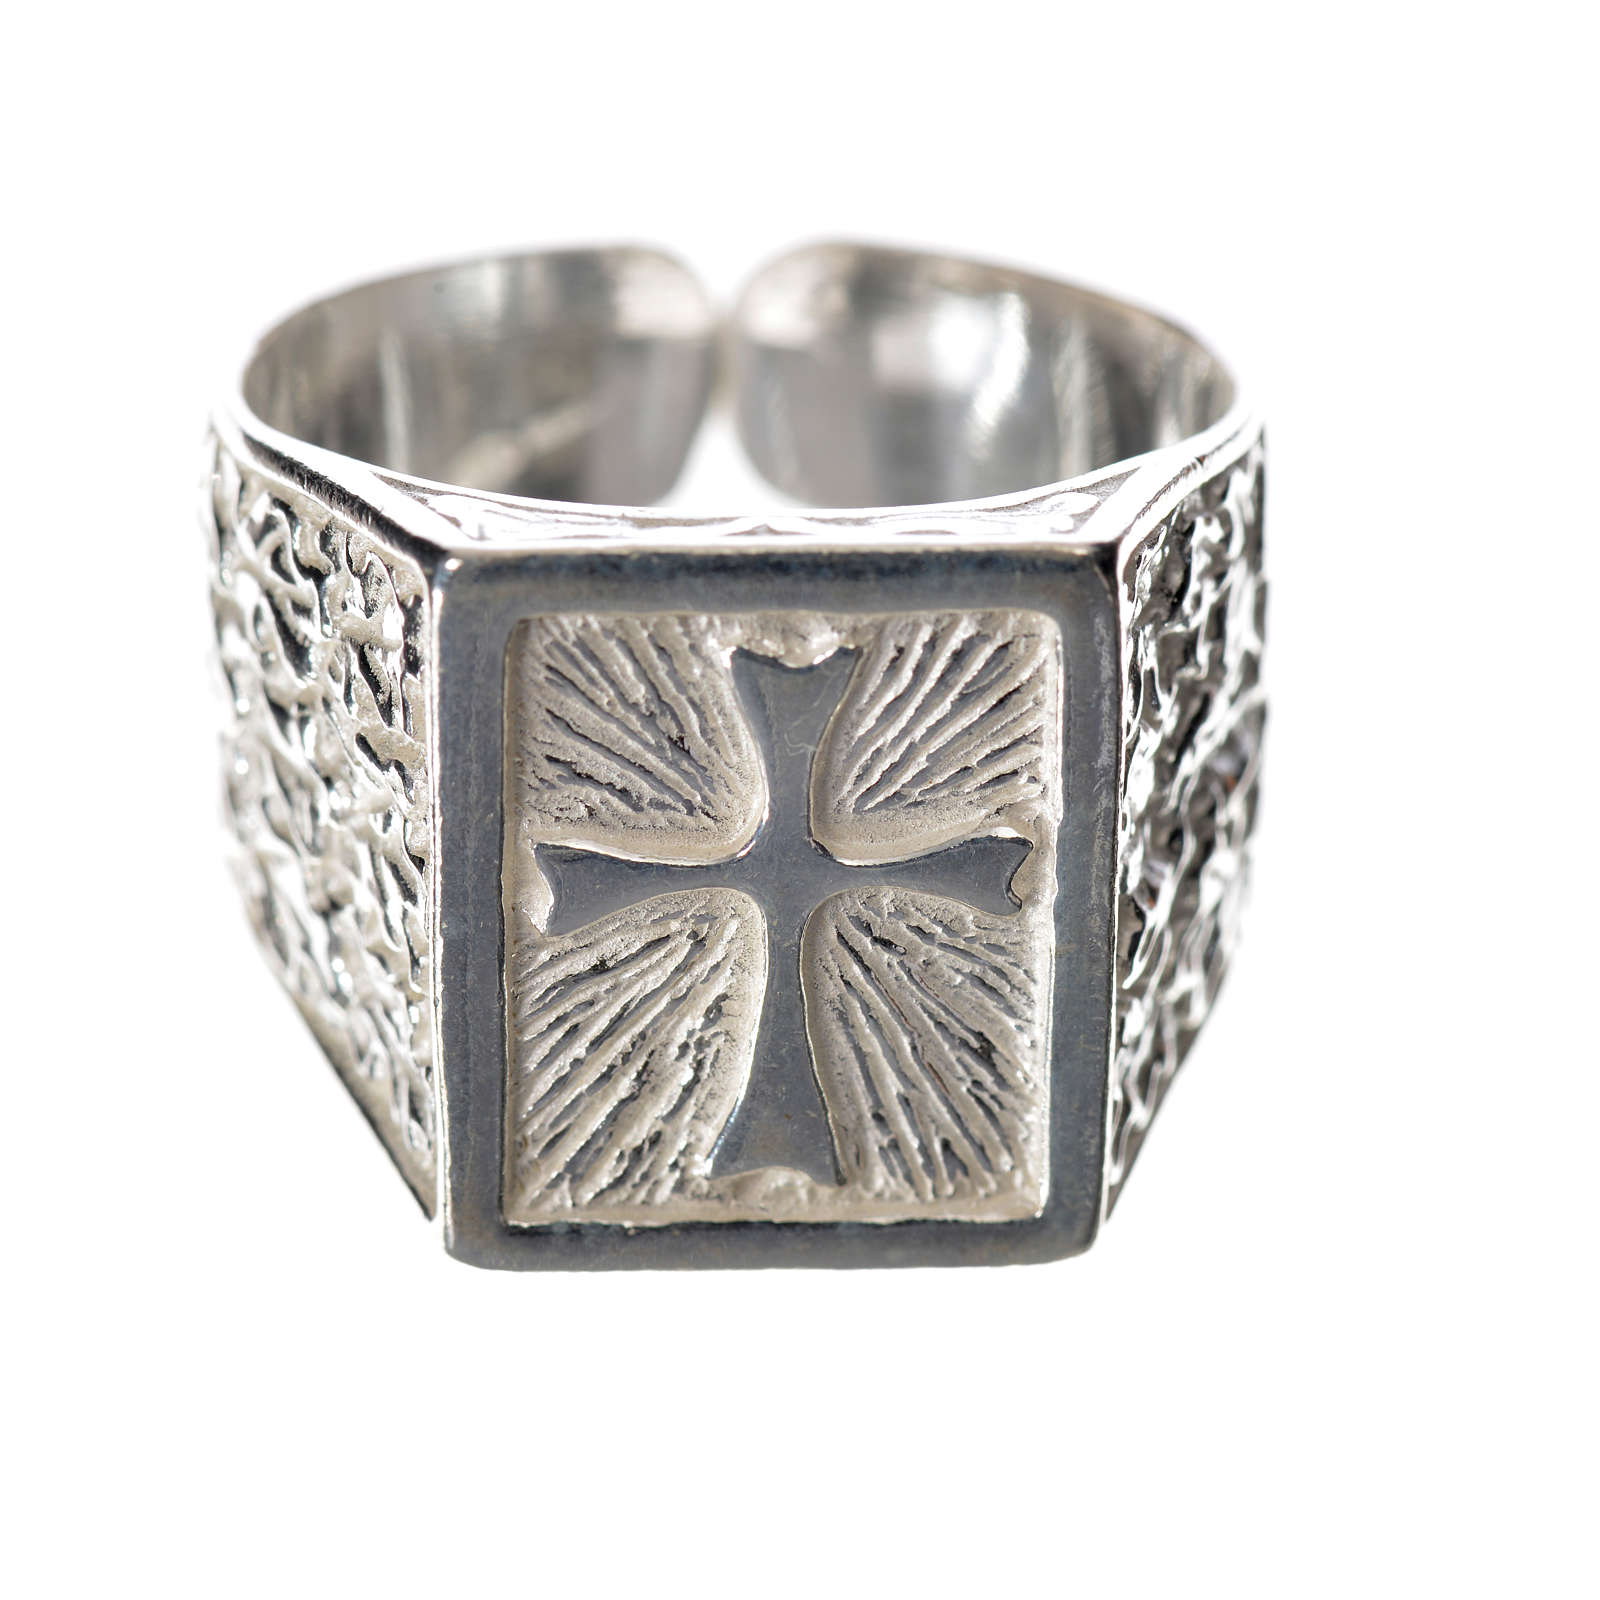 Bishop's ring in 925 silver with cross 3